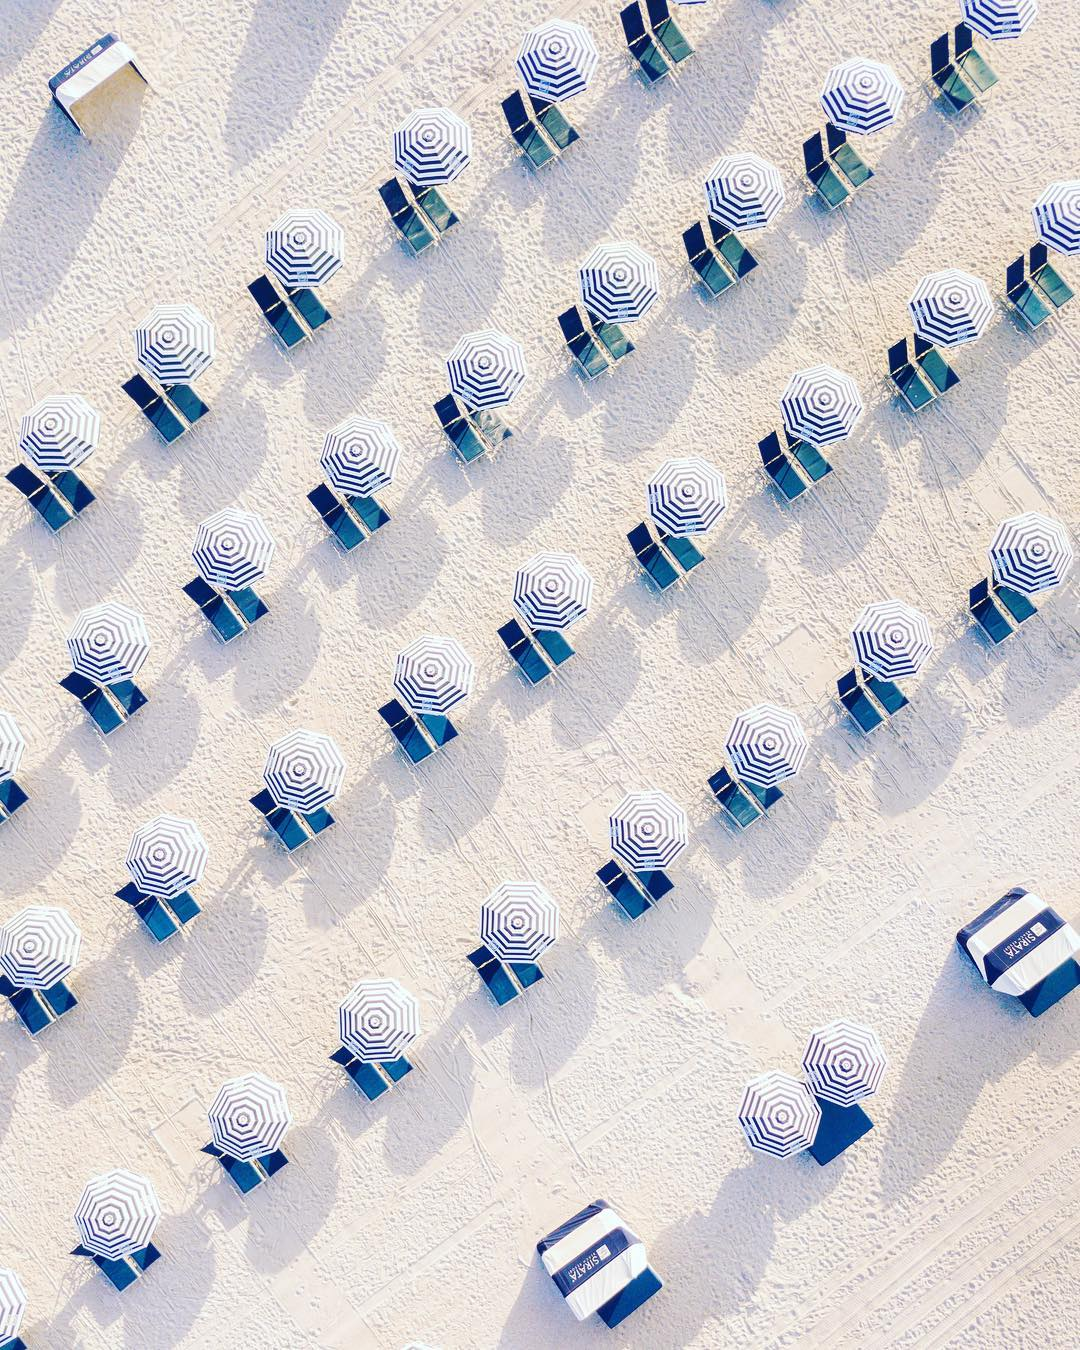 Florida From Above Stunning Drone Photography By Jimmy